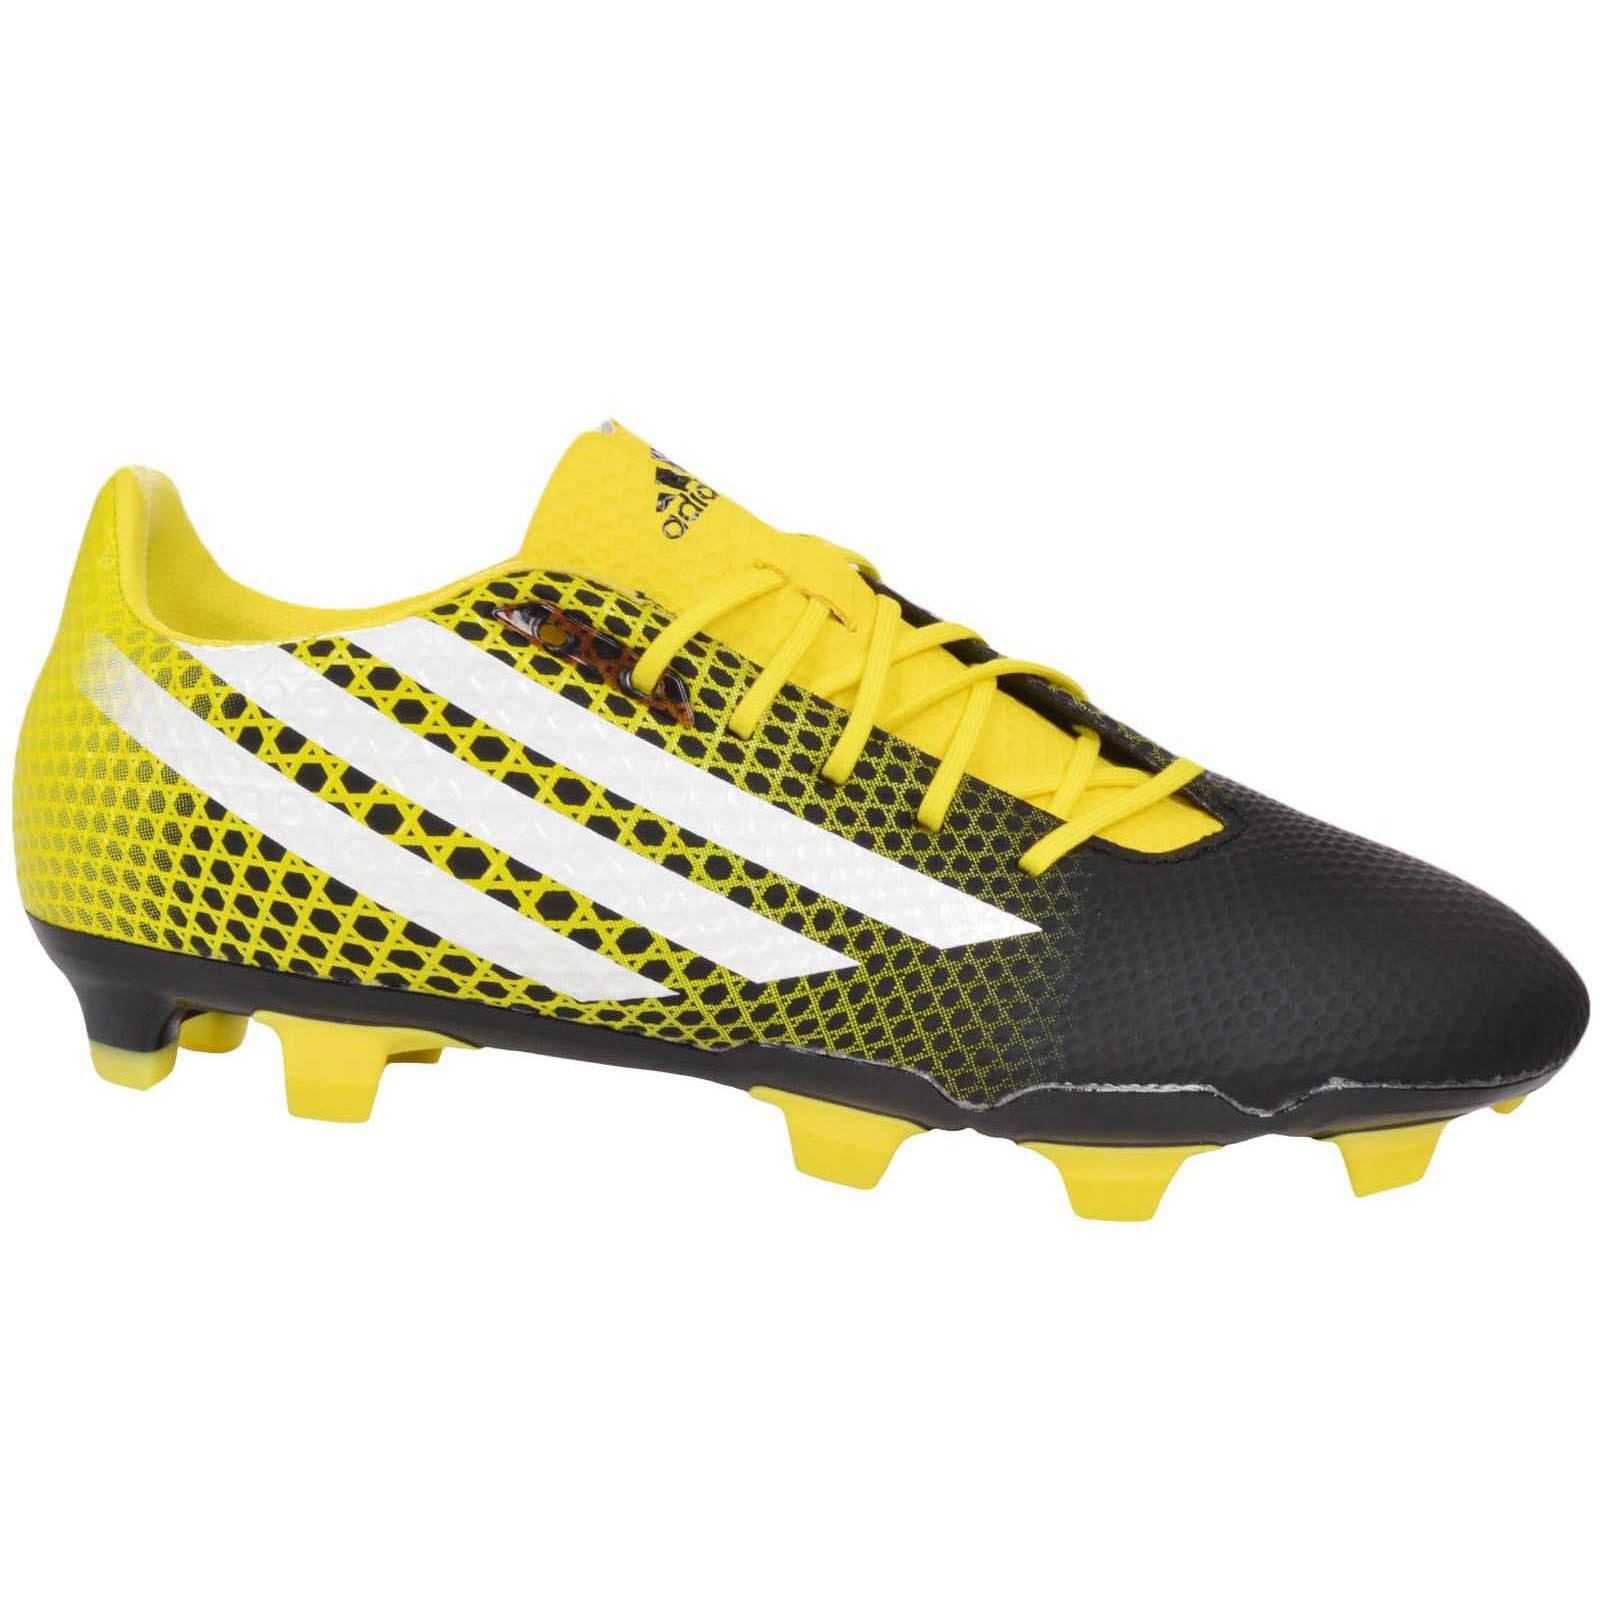 adidas Performance Mens Crazyquick Malice FG Rugby Boots - Black - 6.5US by adidas